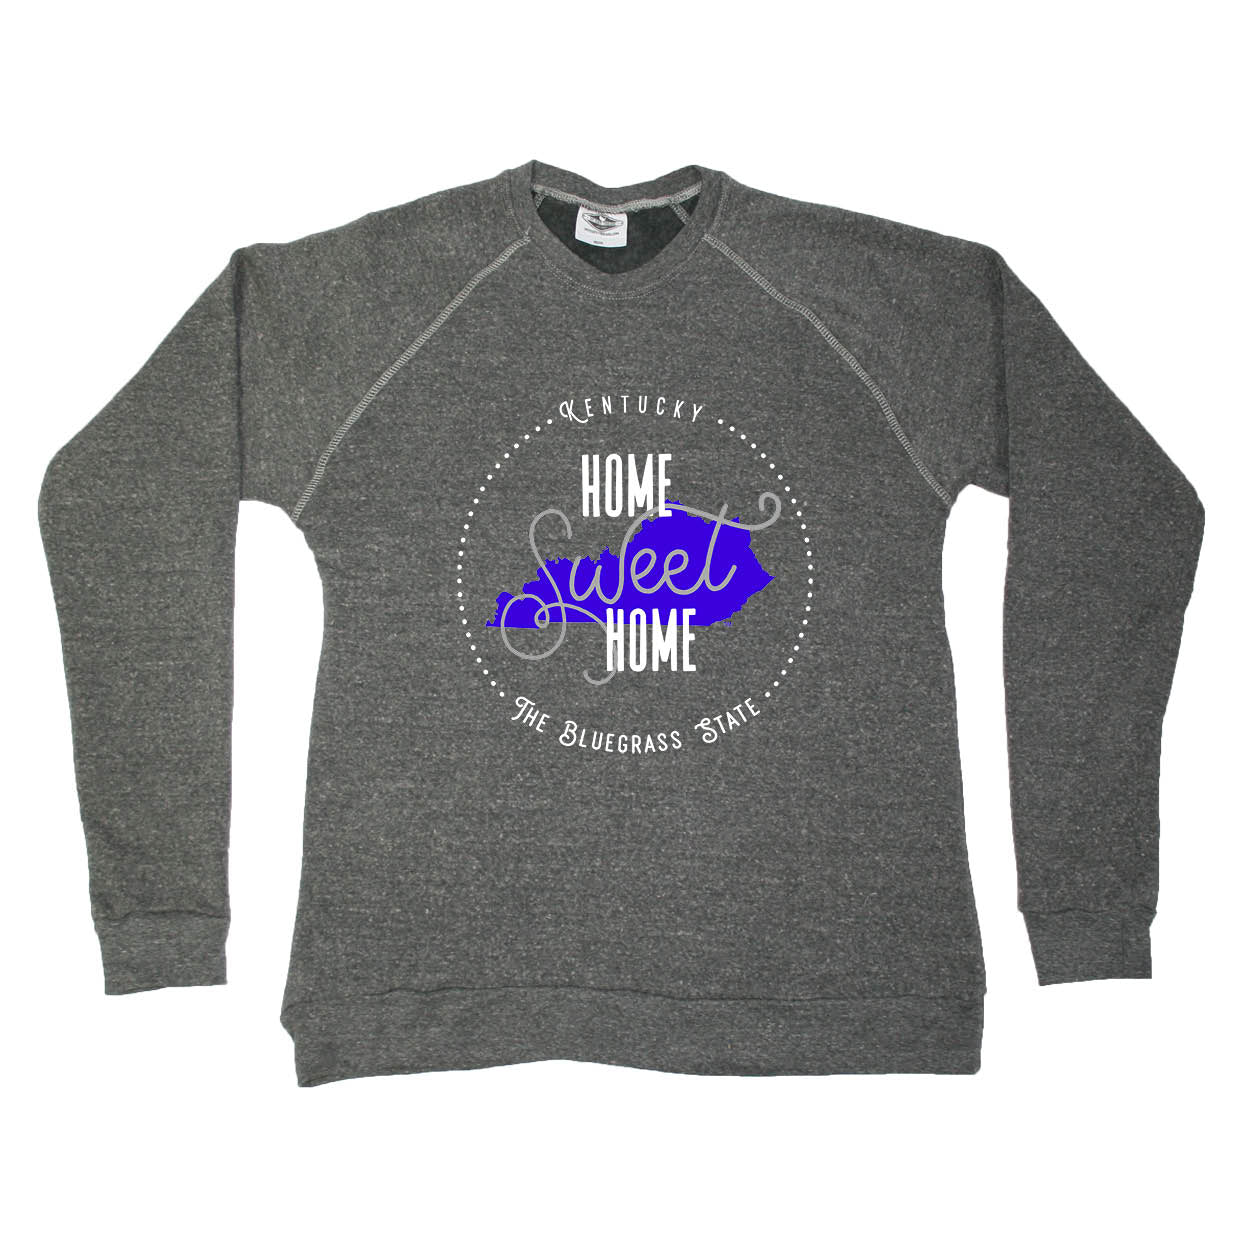 KENTUCKY SWEATSHIRT | HOME SWEET HOME | BLUE